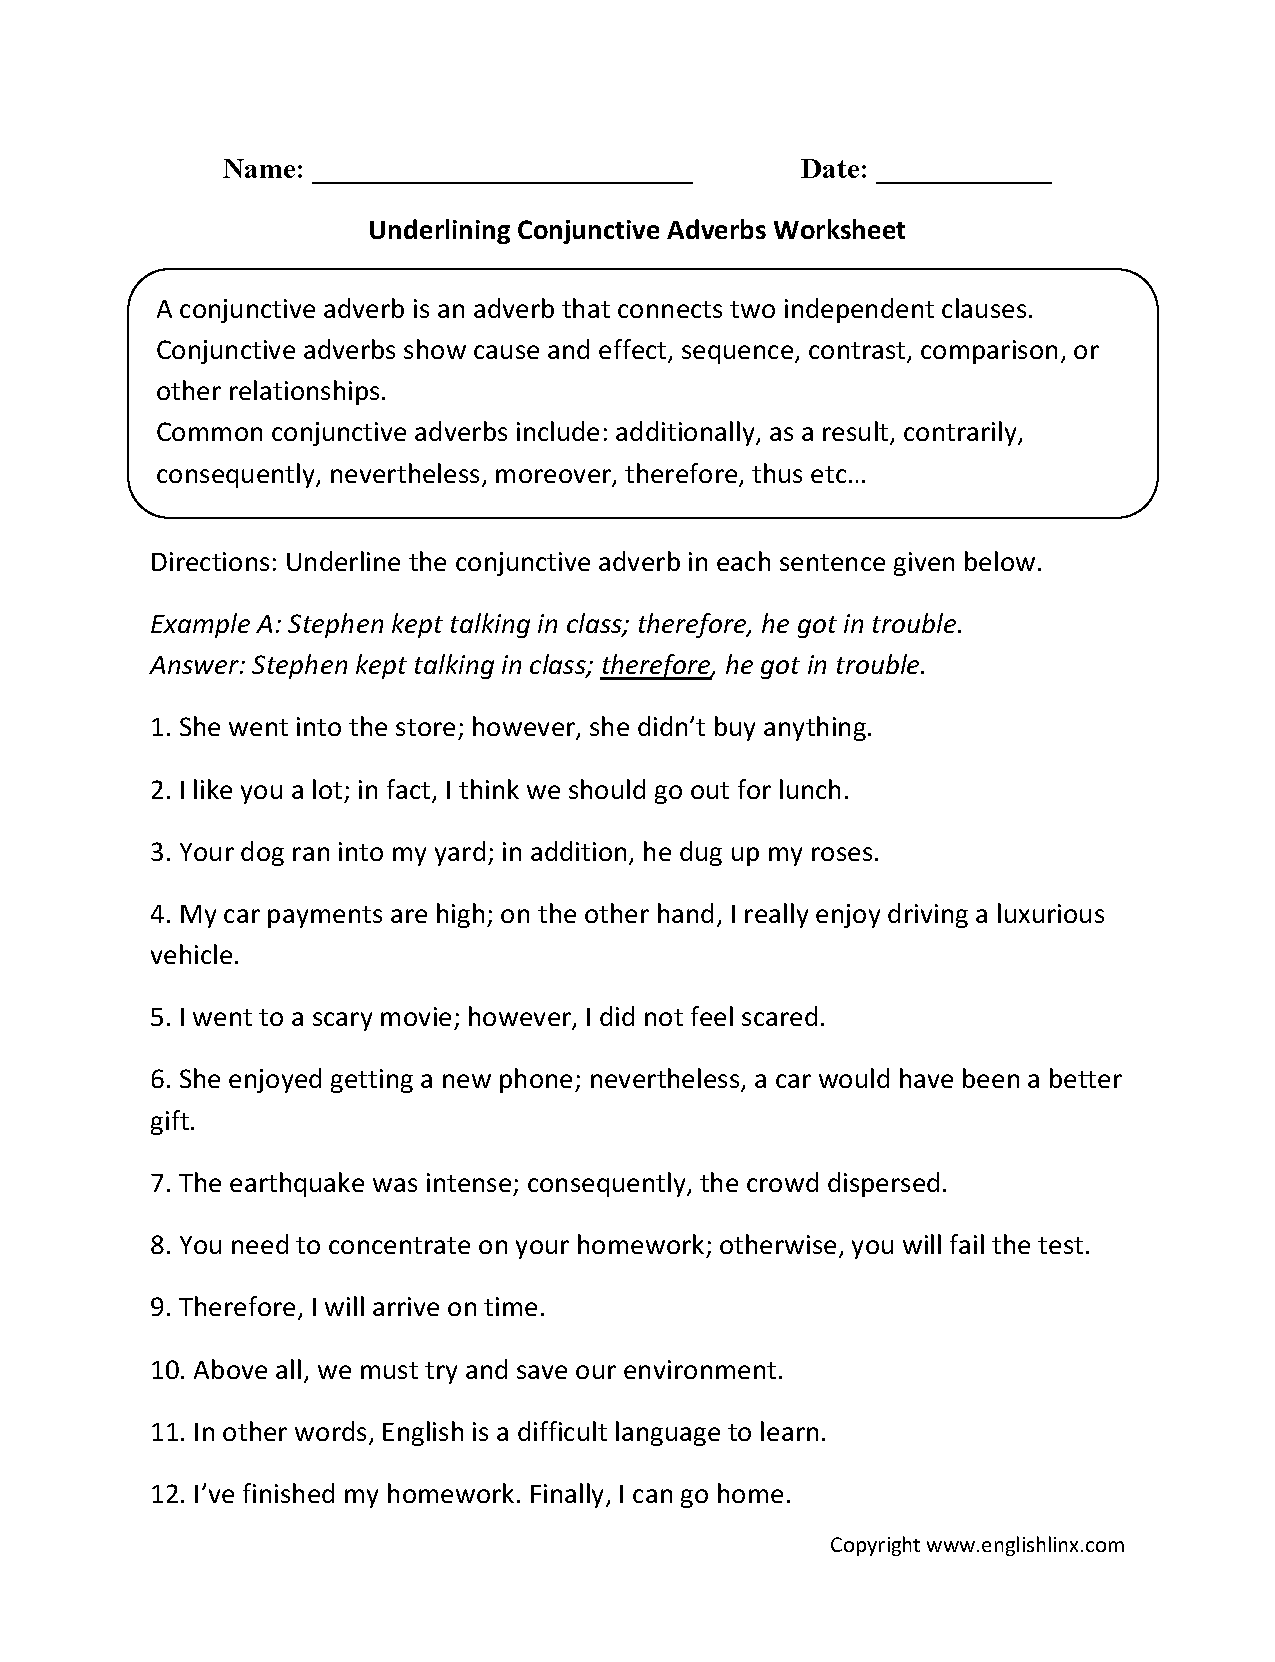 Proatmealus  Inspiring Englishlinxcom  Conjunctions Worksheets With Great Worksheet With Amazing Alphabetize Worksheets Also W  Exemptions Worksheet In Addition Paul Bunyan Worksheets And  Digit Divisor Worksheets As Well As Rounding Worksheet Rd Grade Additionally Recovery From Addiction Worksheets From Englishlinxcom With Proatmealus  Great Englishlinxcom  Conjunctions Worksheets With Amazing Worksheet And Inspiring Alphabetize Worksheets Also W  Exemptions Worksheet In Addition Paul Bunyan Worksheets From Englishlinxcom